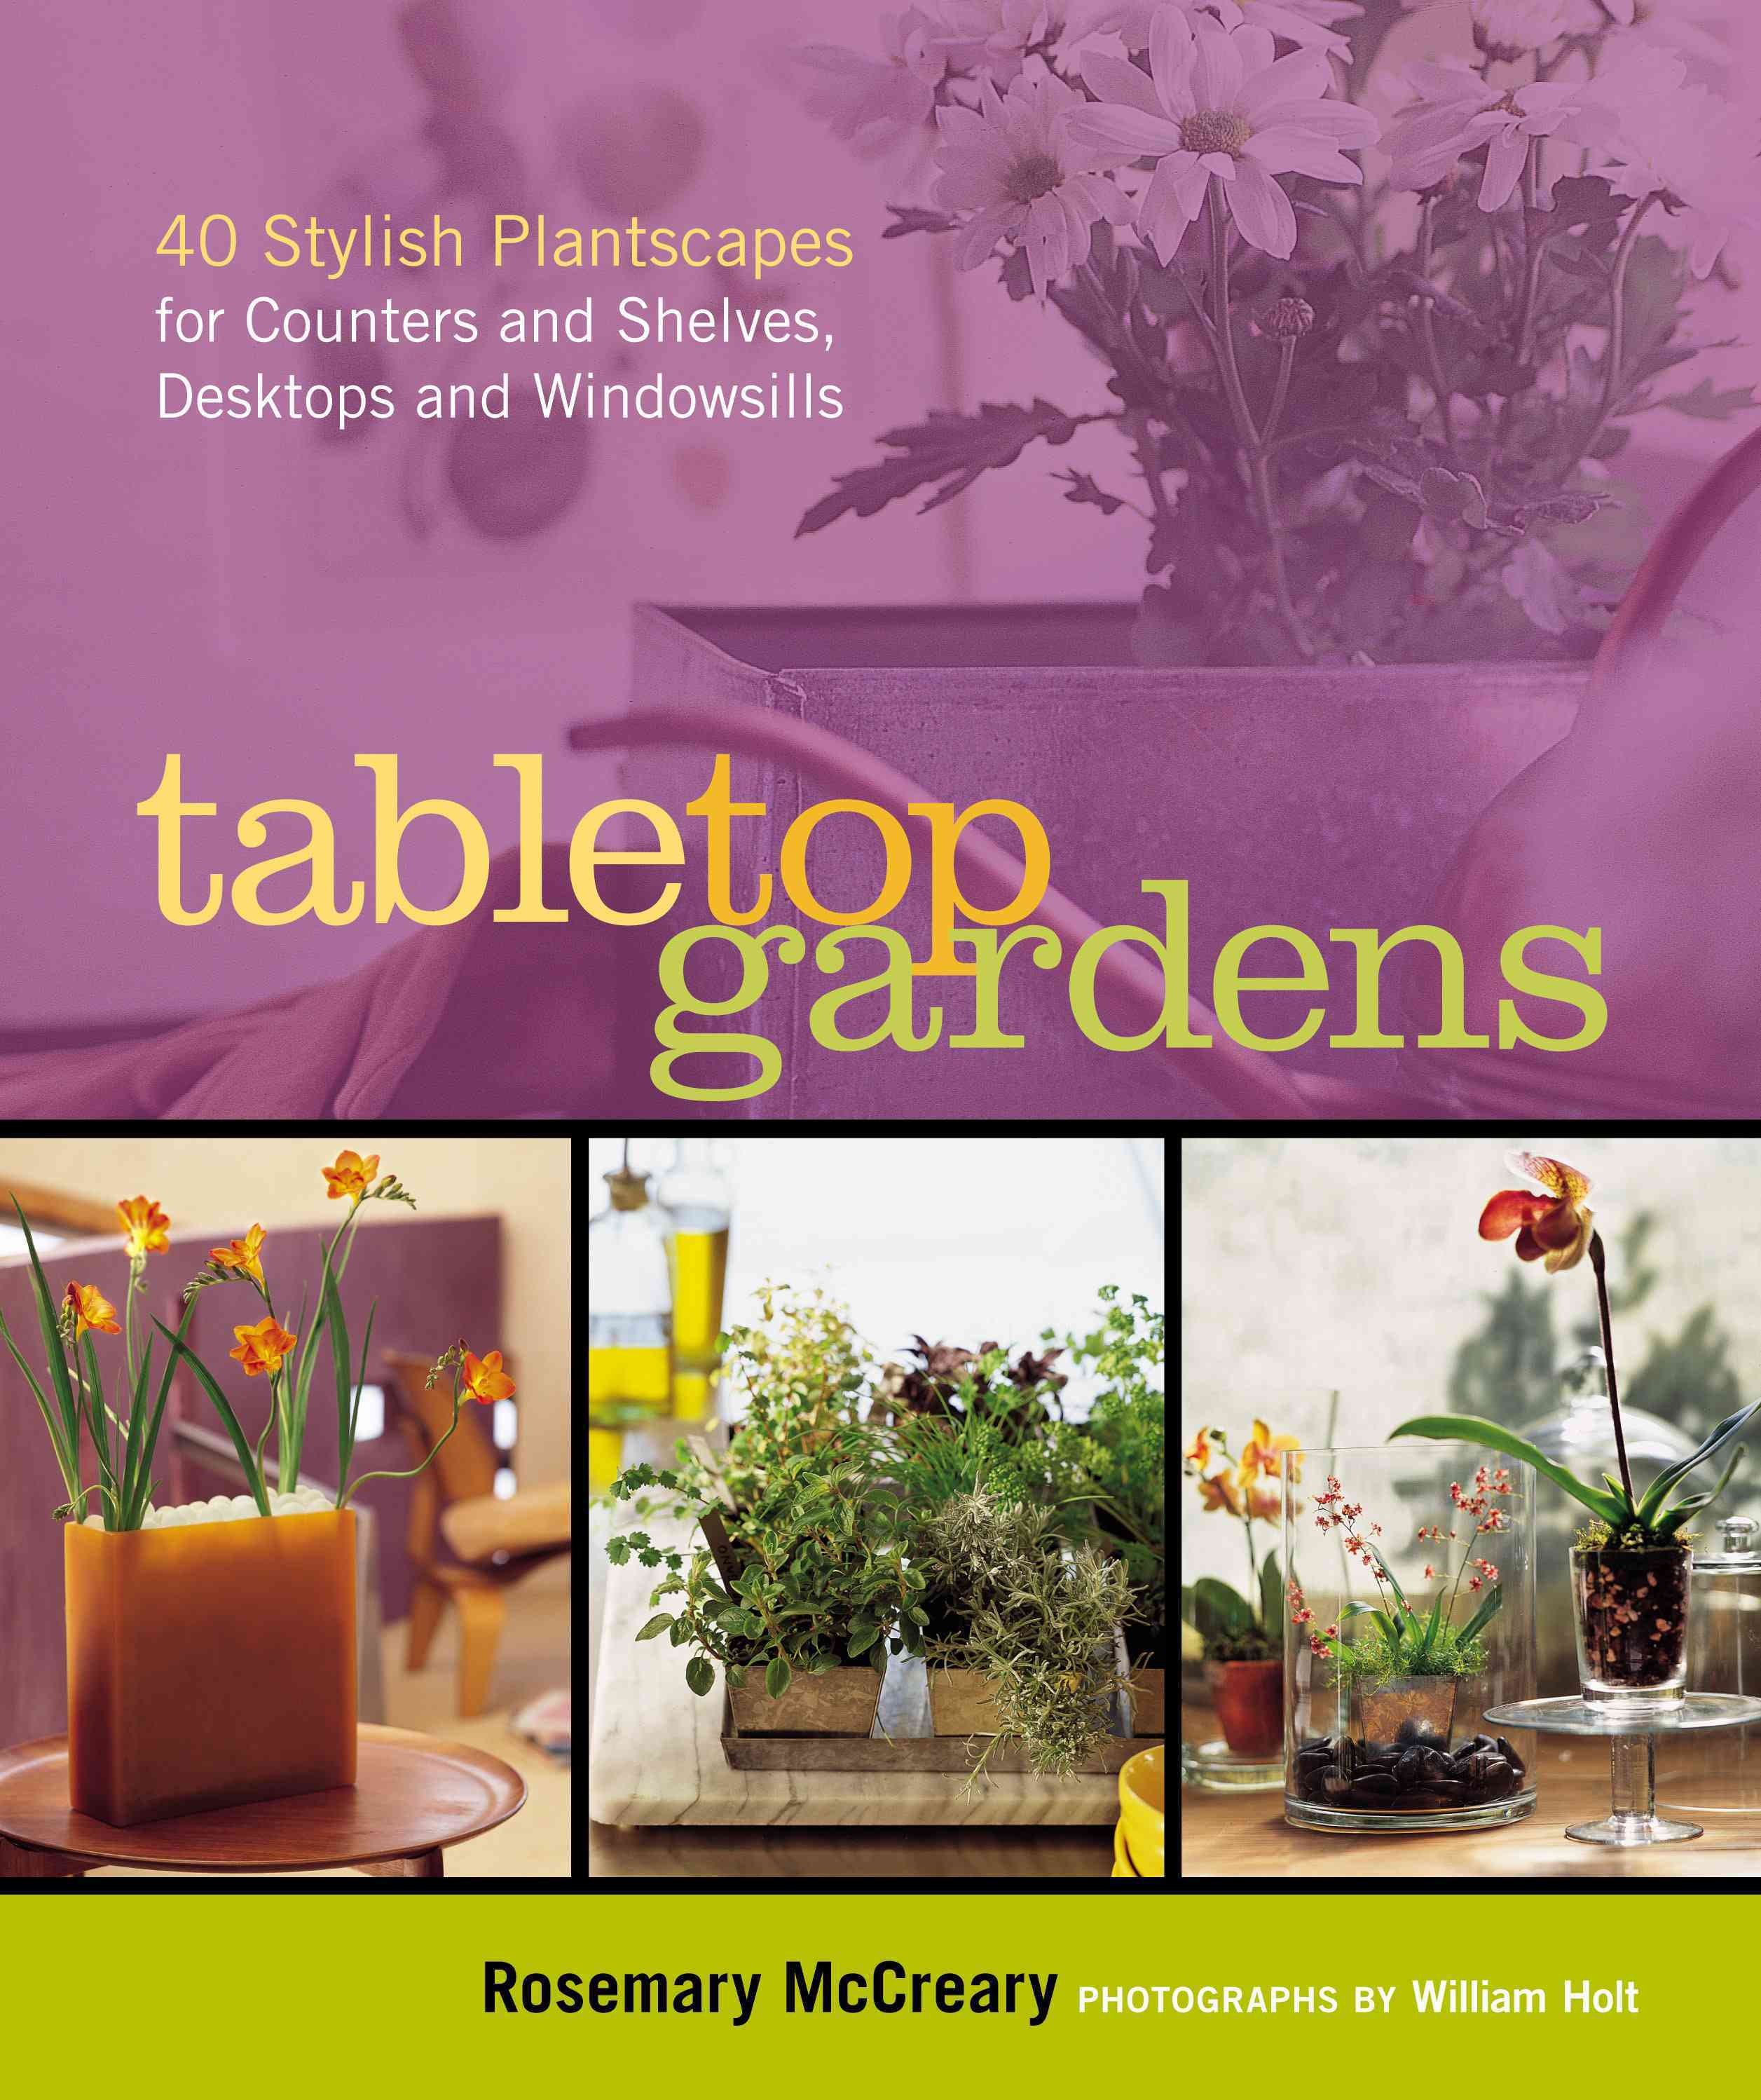 Tabletop Gardens: 40 Stylish Plantscapes For Counters And Shelves, Desktops And Windowsills (Paperback)